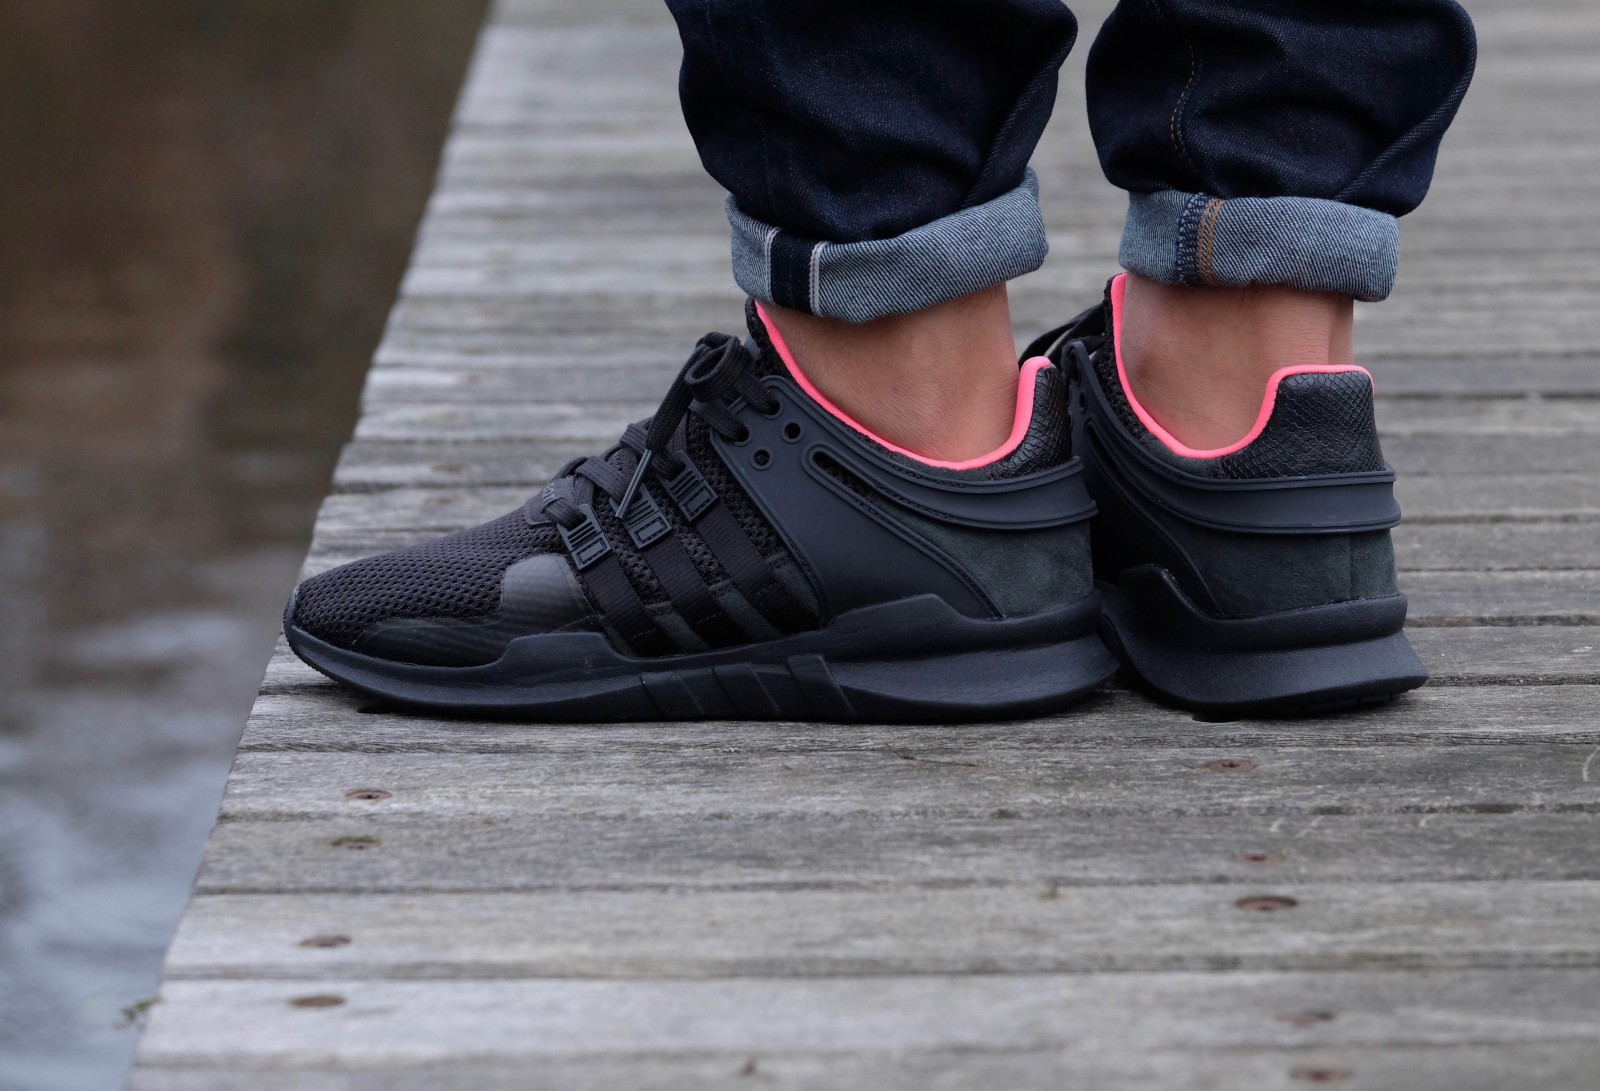 adidas EQT Support RF Shoes Black adidas MLT Cheap Adidas EQT